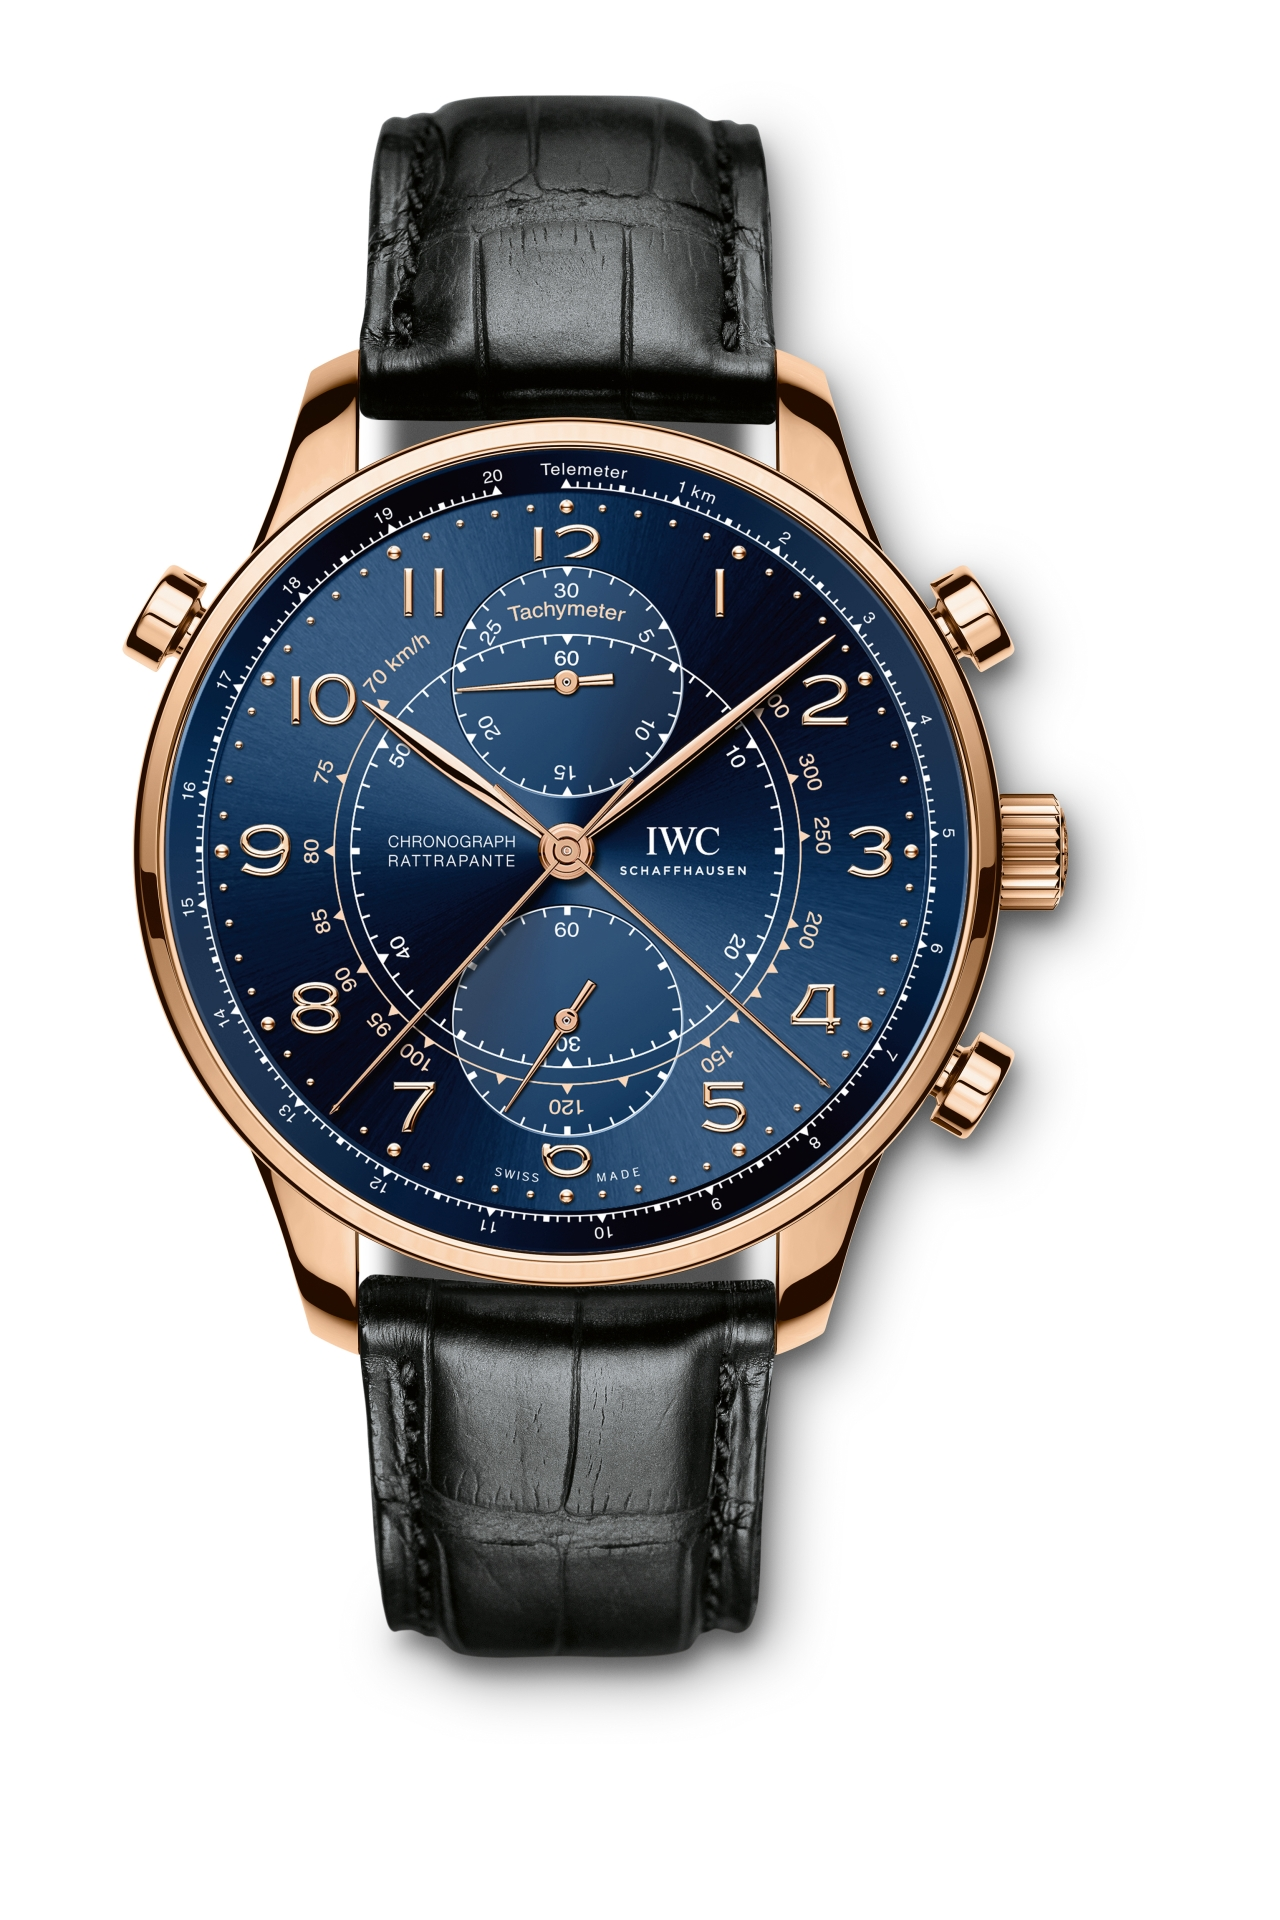 """To mark the opening of the new boutique in Milan, IWC Schaffhausen presented the Portugieser Chronograph Rattrapante Edition """"Boutique Milano"""" (Ref. IW371215) in June 2016. The 100-piece limited-edition watch is secured to the wrist by a hand-finished black alligator leather strap and is driven by a hand-wound 76240-calibre movement with a power reserve of 44 hours. (PPR/IWC)"""